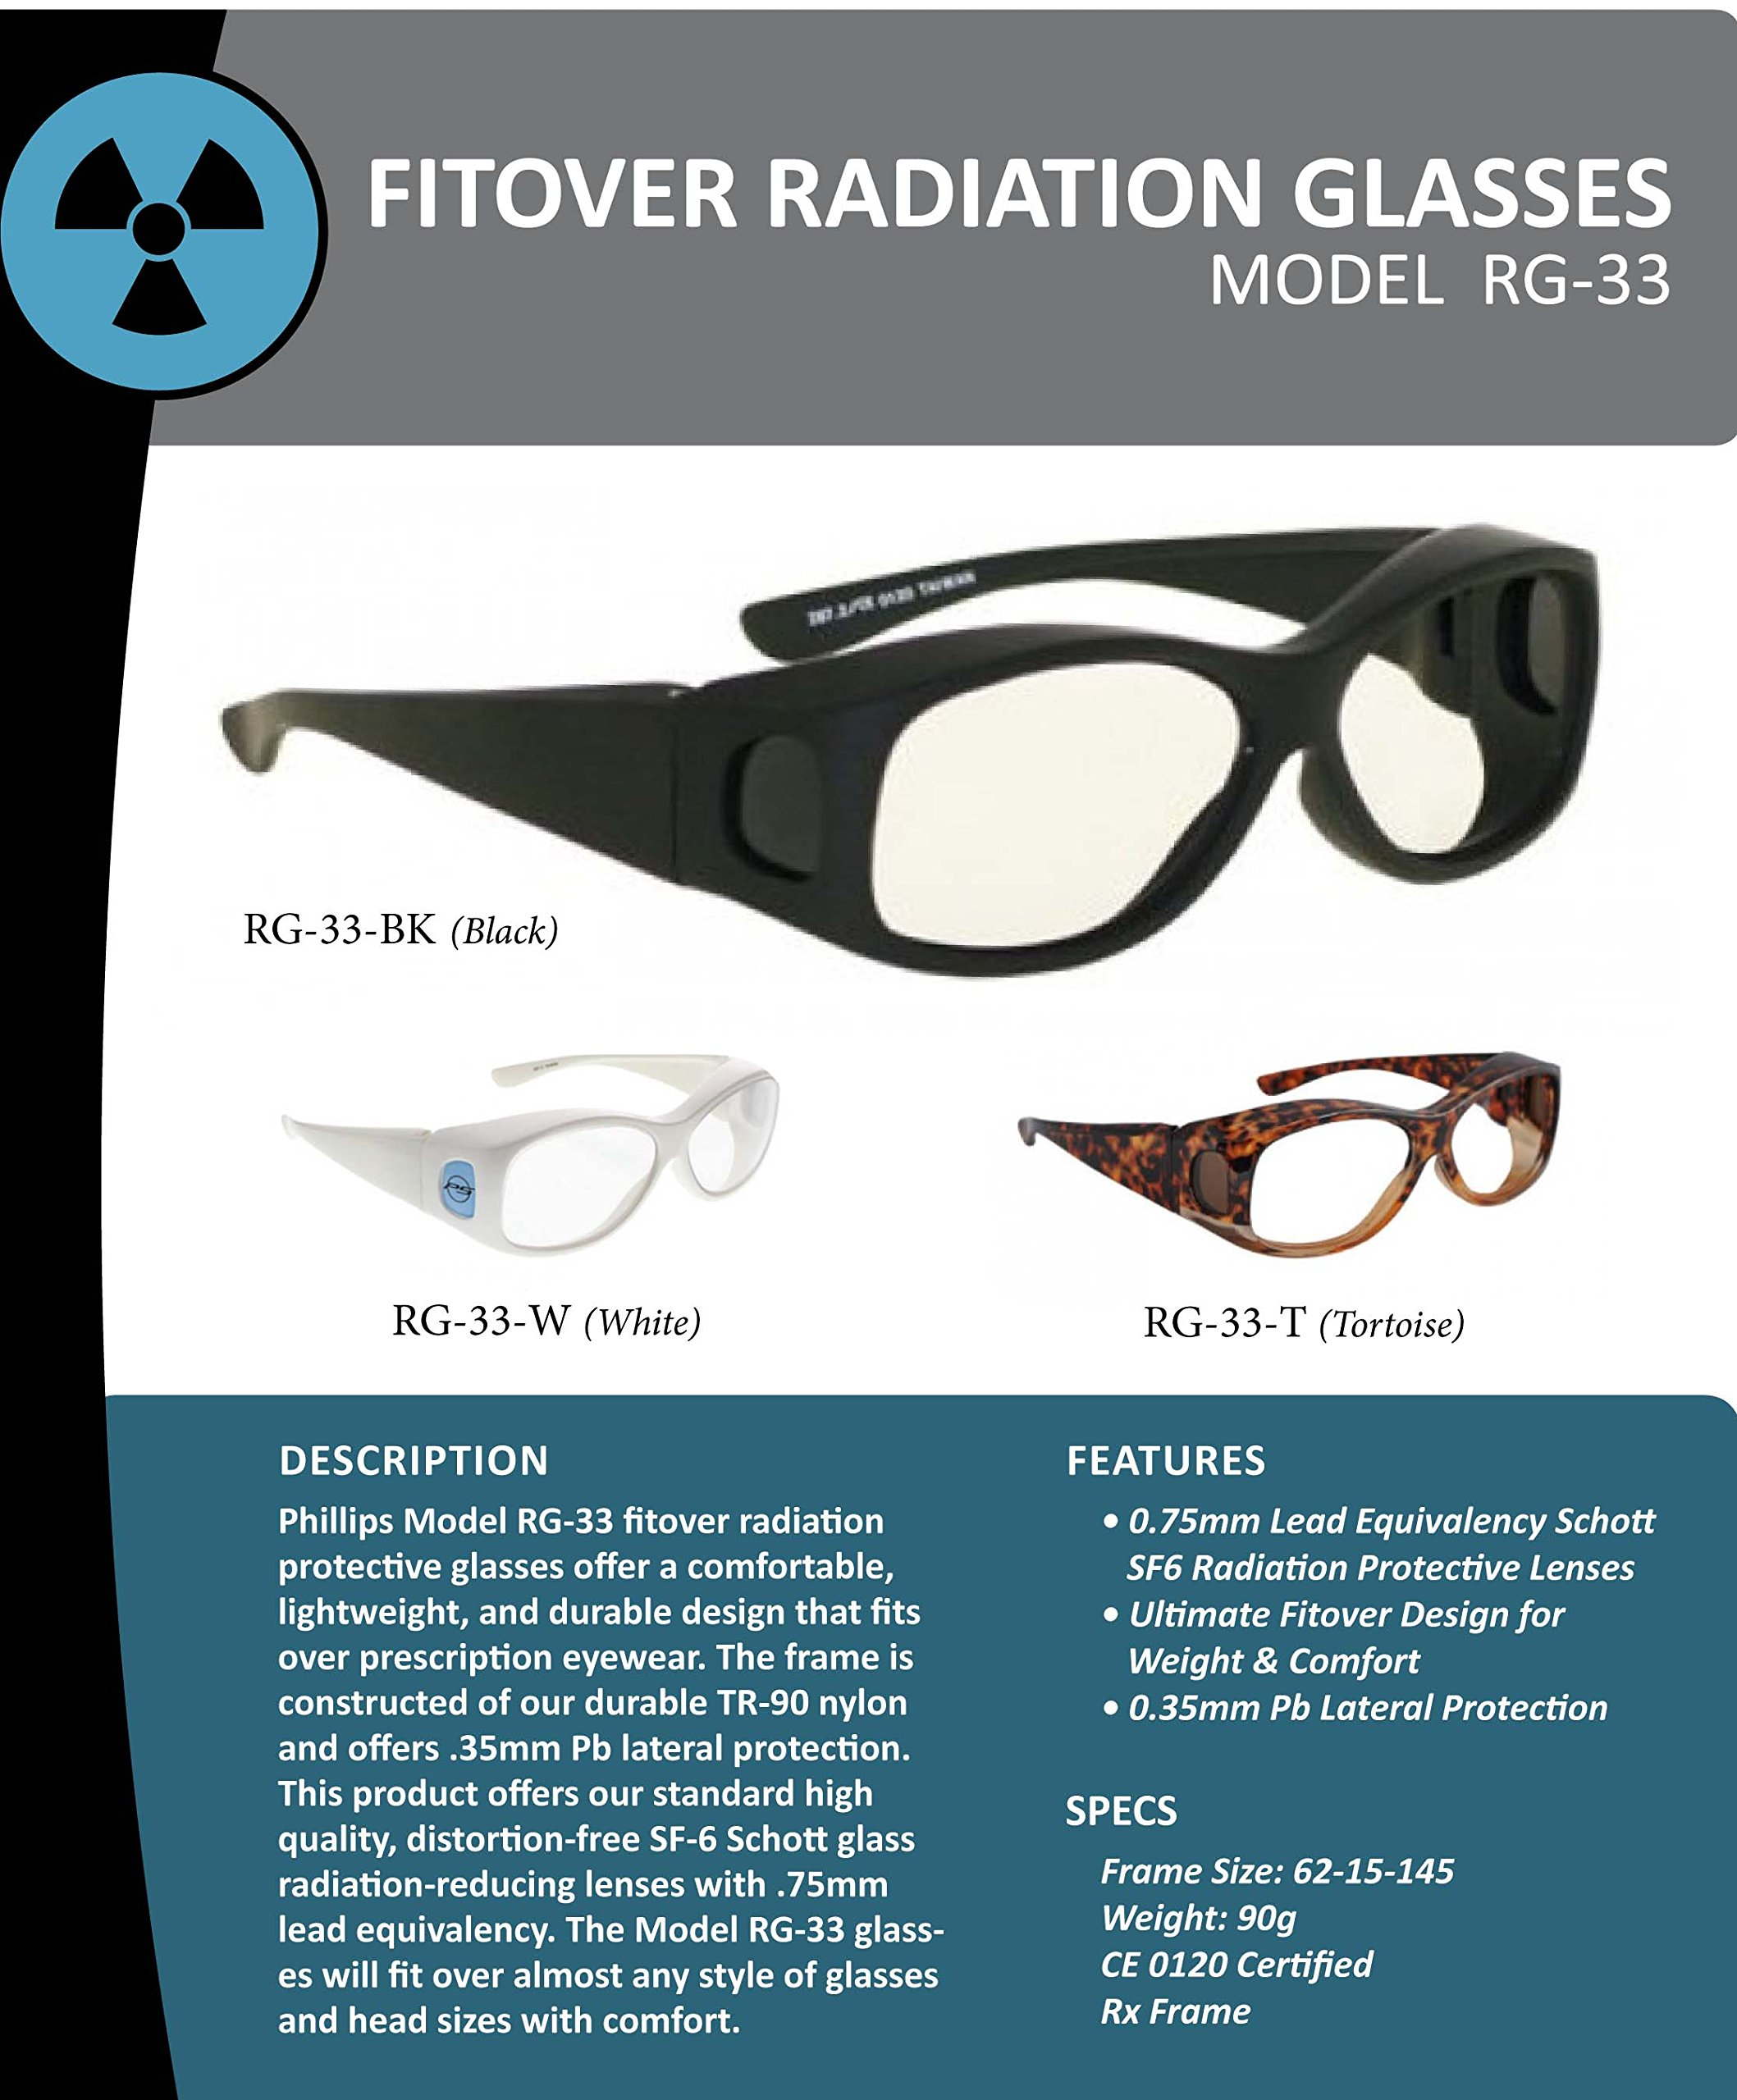 Radiation Safety Glasses - Fitovers In Large Plastic Black Safety Frame With Permanent Side Shields by Schott SF-6 HT